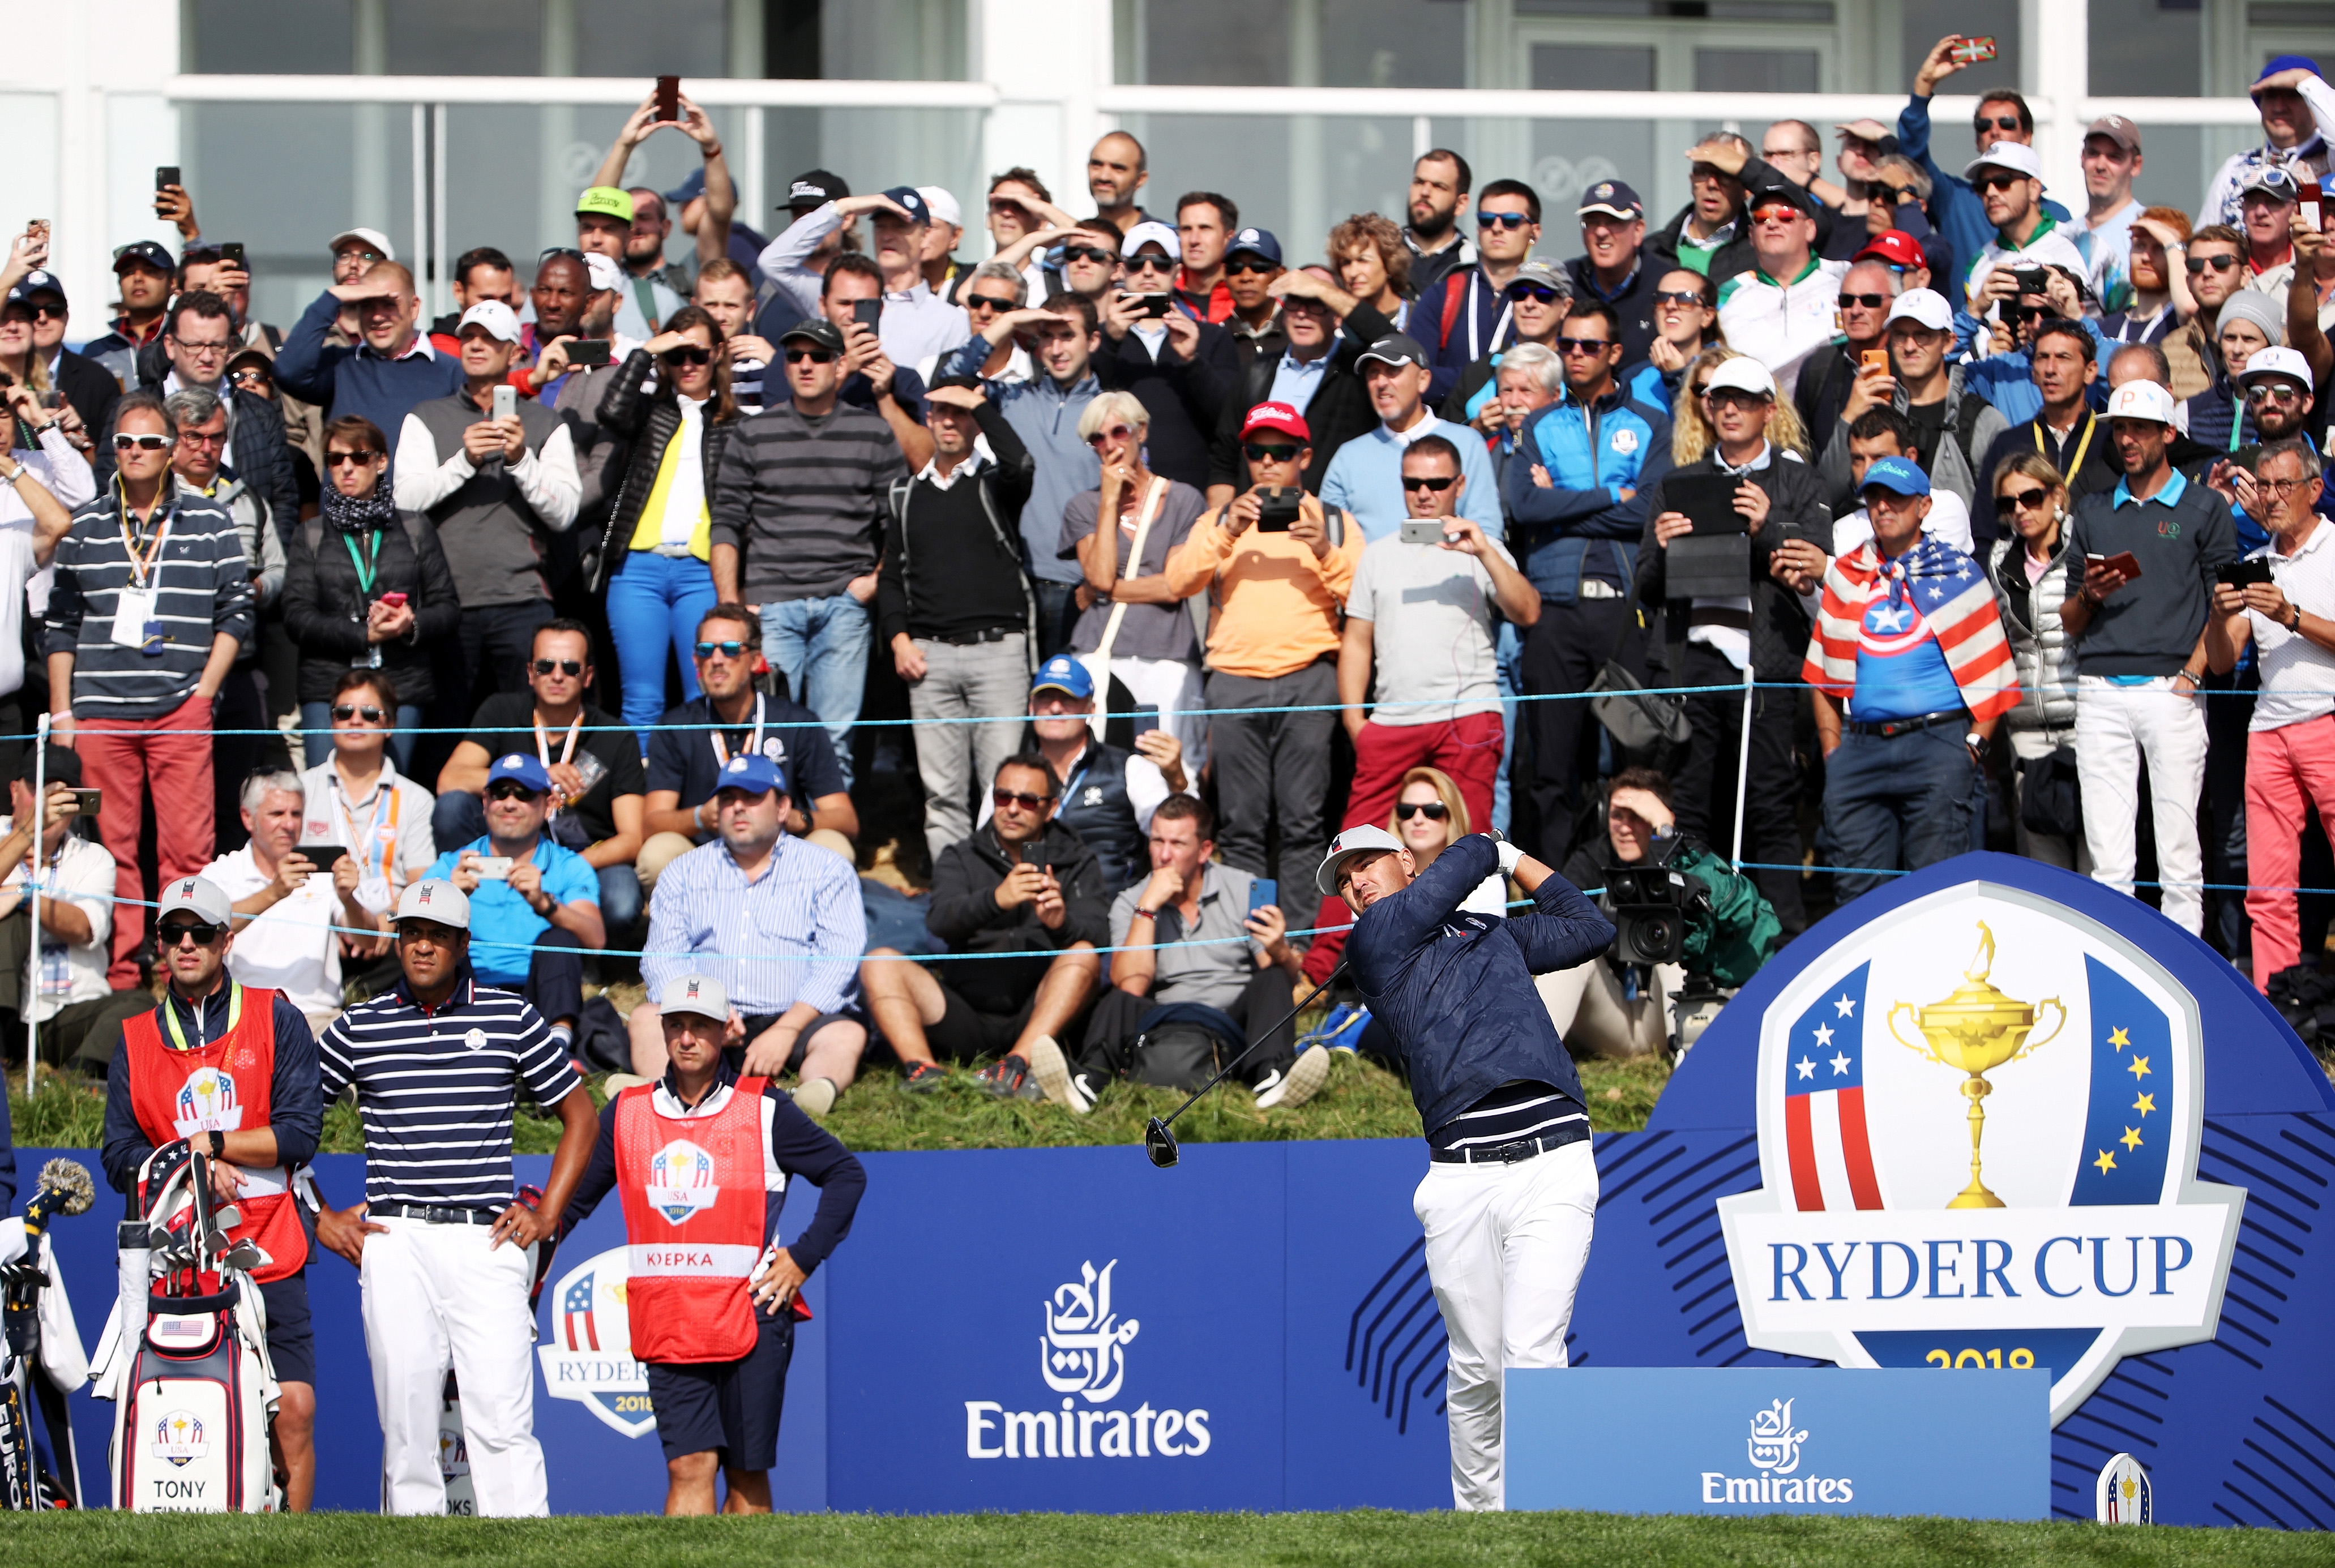 PARIS, FRANCE - SEPTEMBER 28: Brooks Koepka of the United States plays his shot from the 17th tee  during the morning fourball matches of the 2018 Ryder Cup at Le Golf National on September 28, 2018 in Paris, France.  (Photo by Christian Petersen/Getty Images)